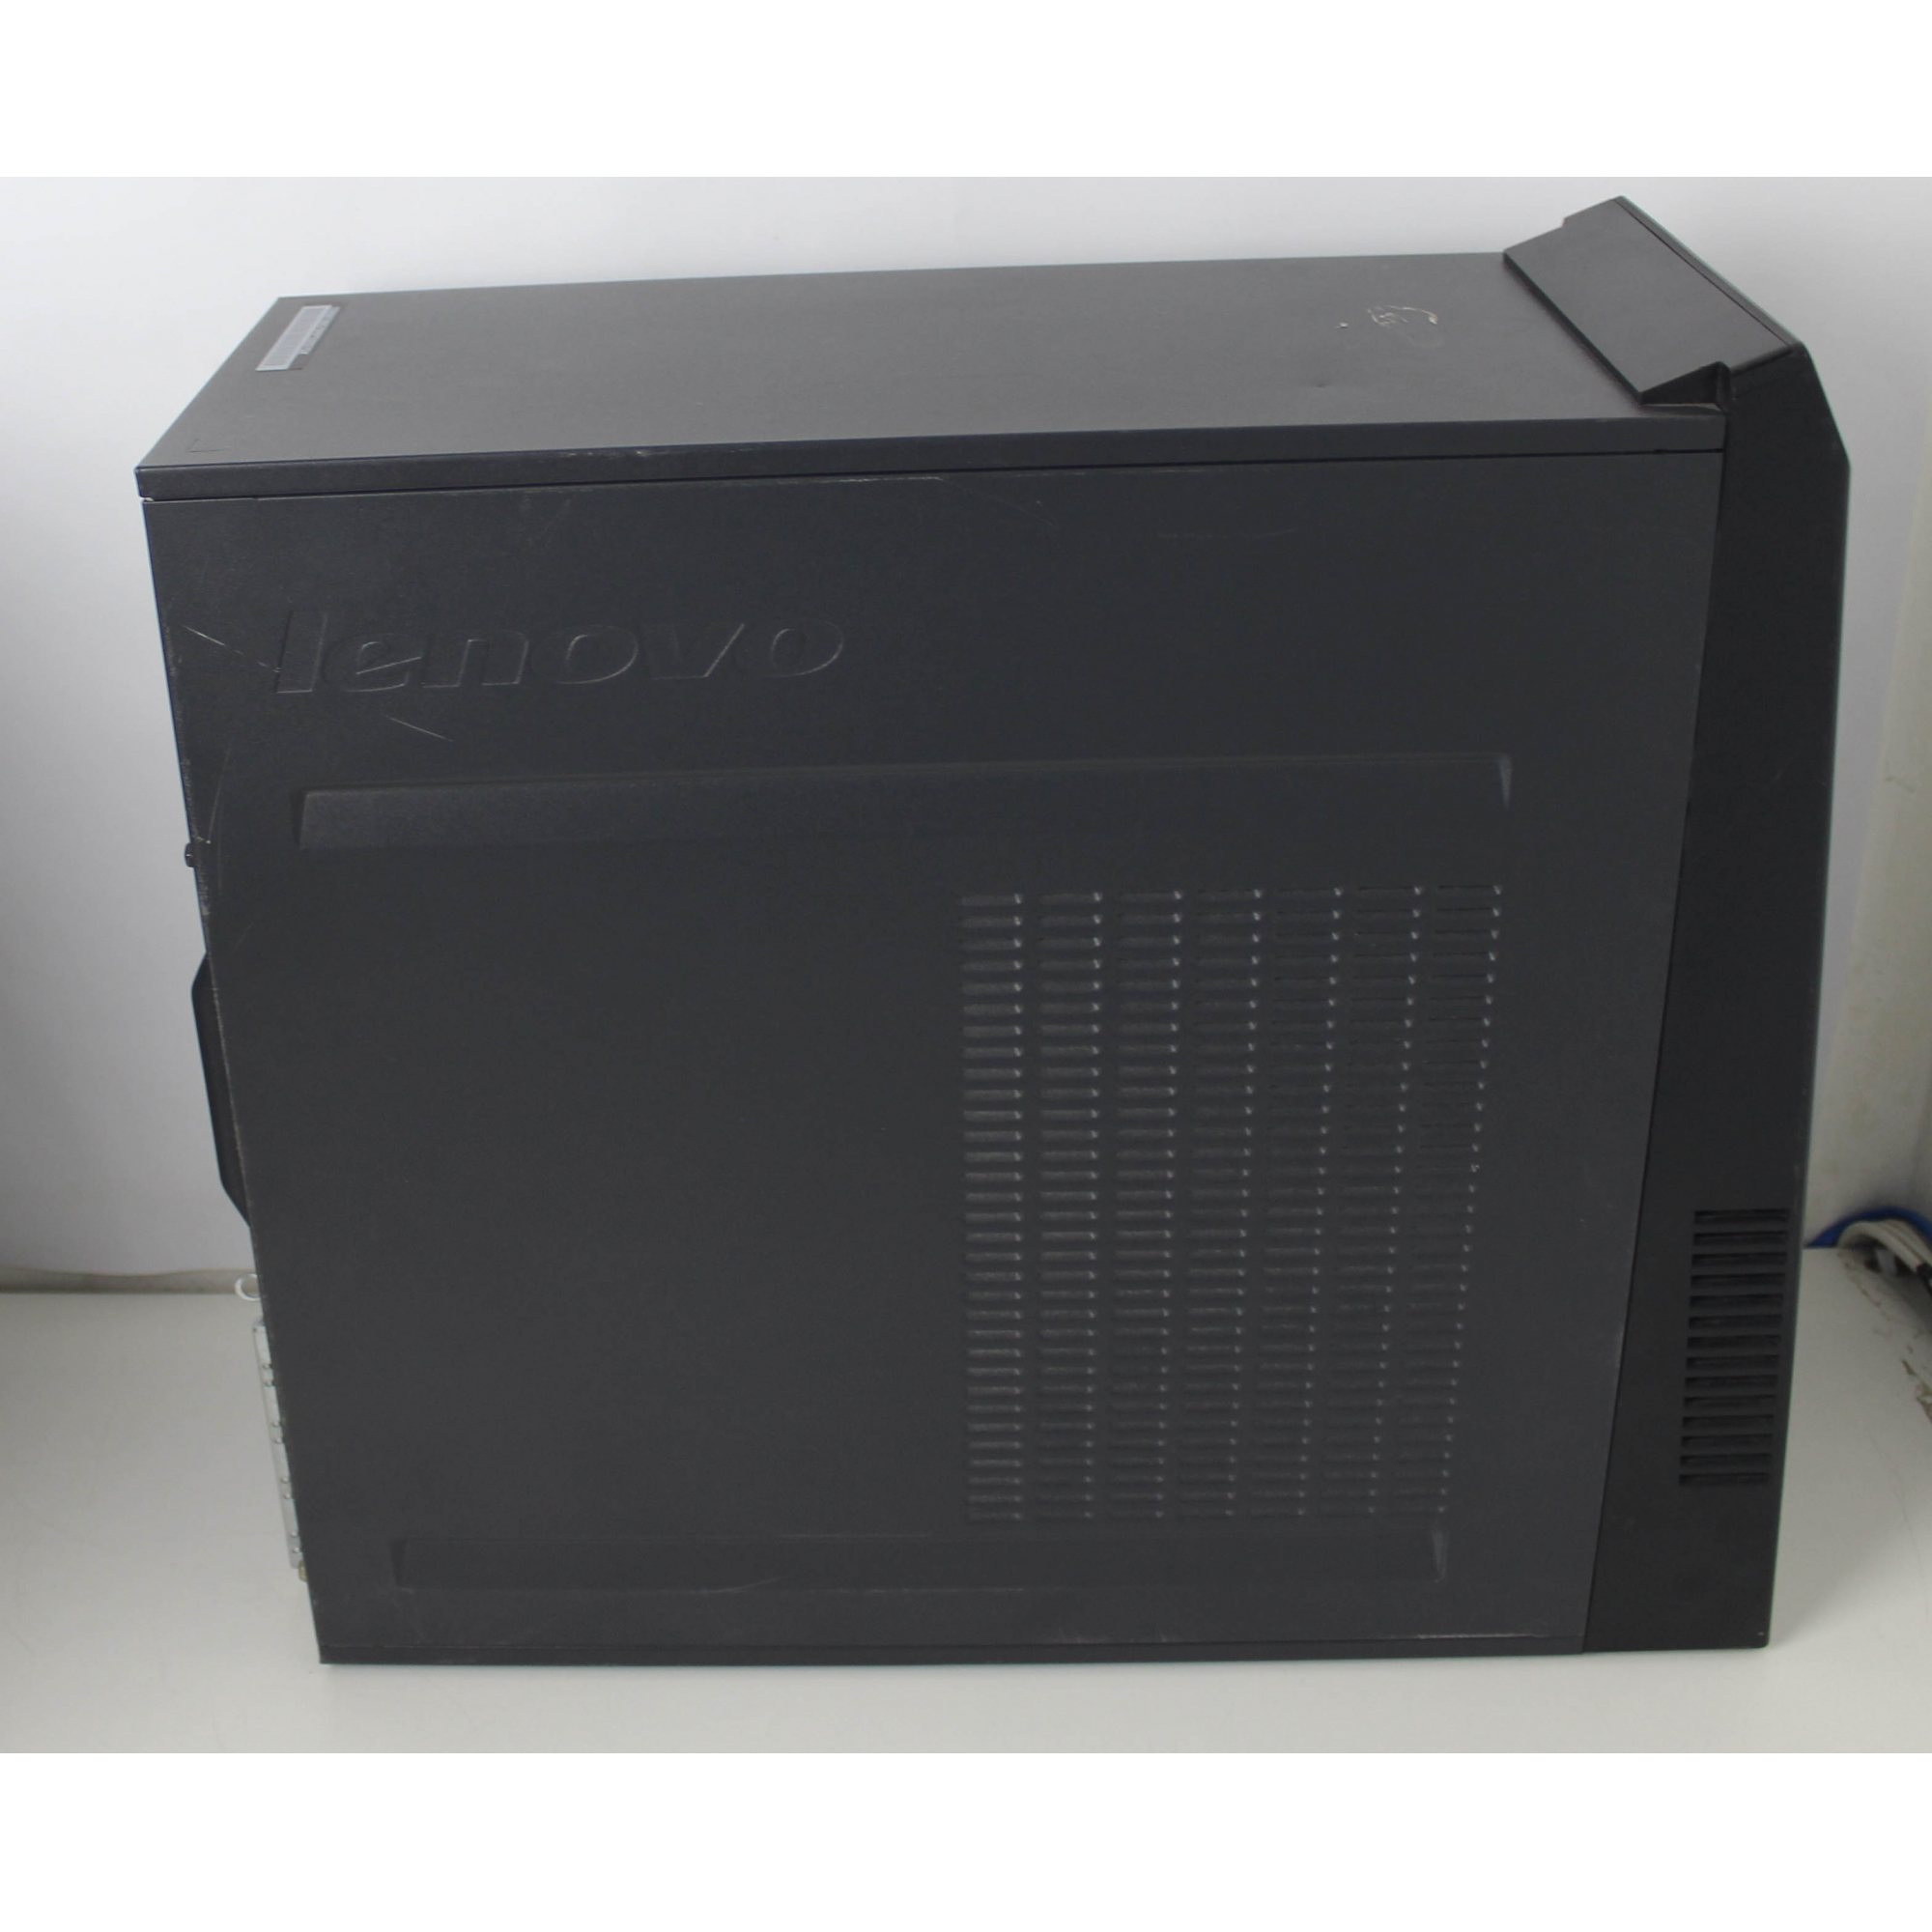 CPU Lenovo 63 Intel Core i3 3.5GHz 8GB HD-500GB